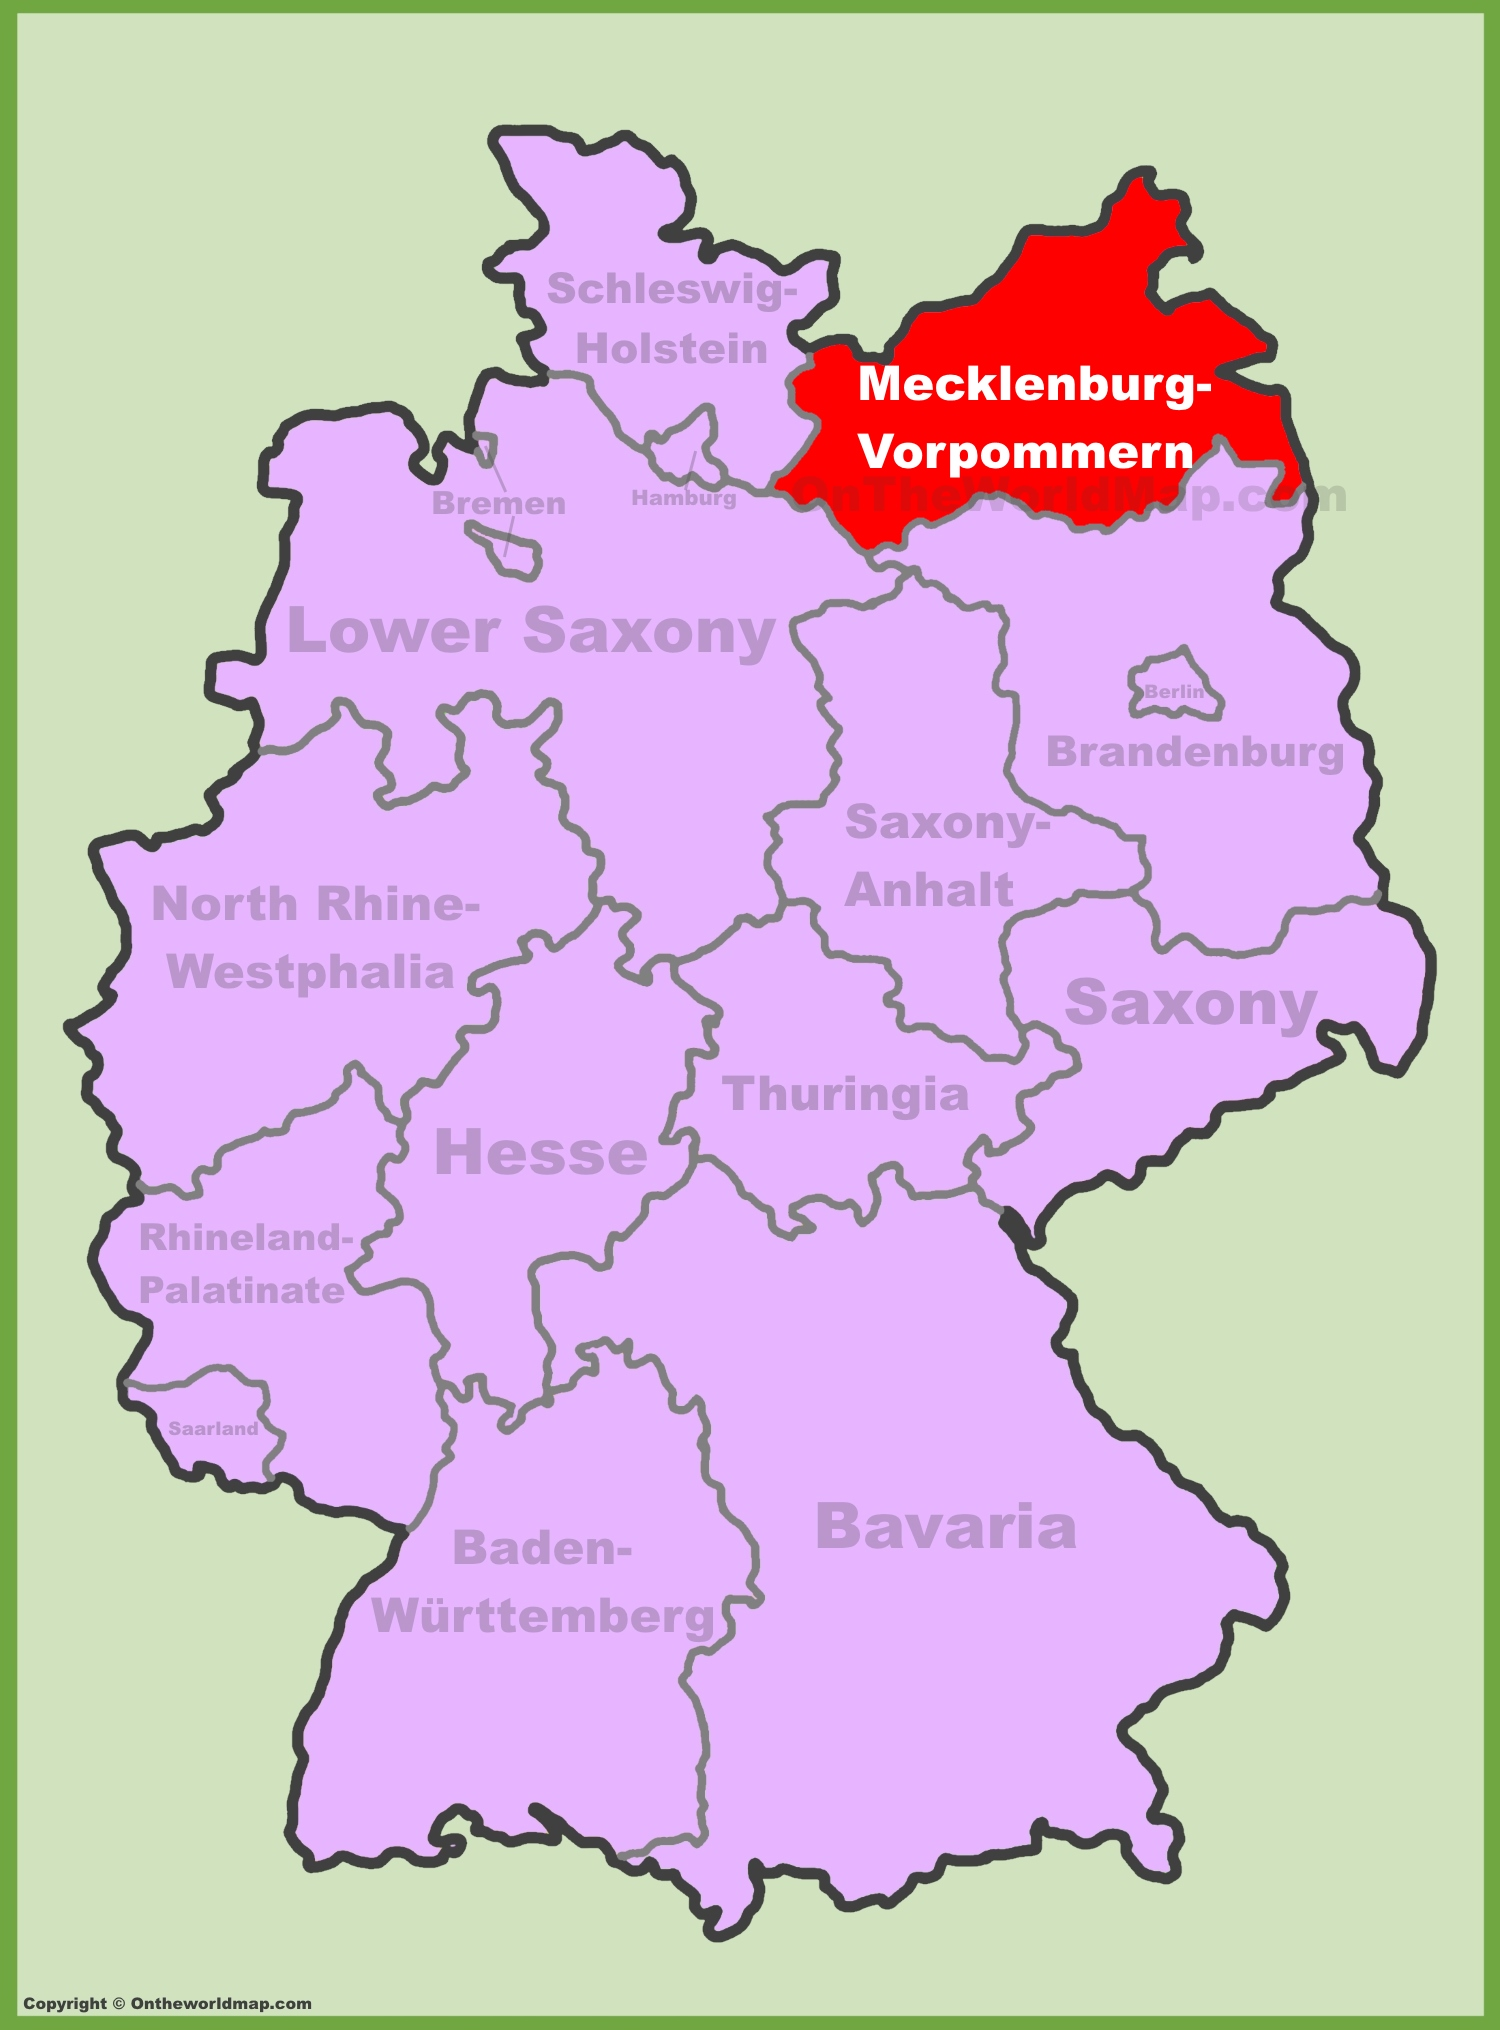 MecklenburgVorpommern location on the Germany map